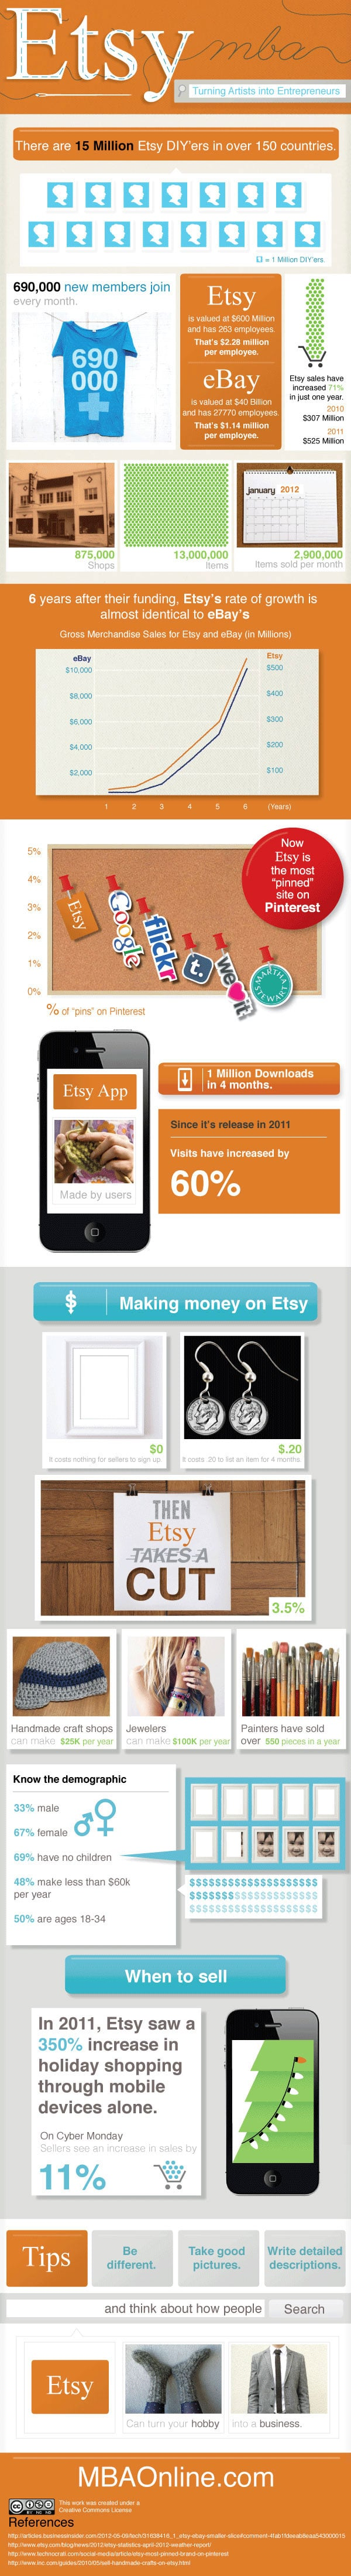 the-history-of-etsy-infographic